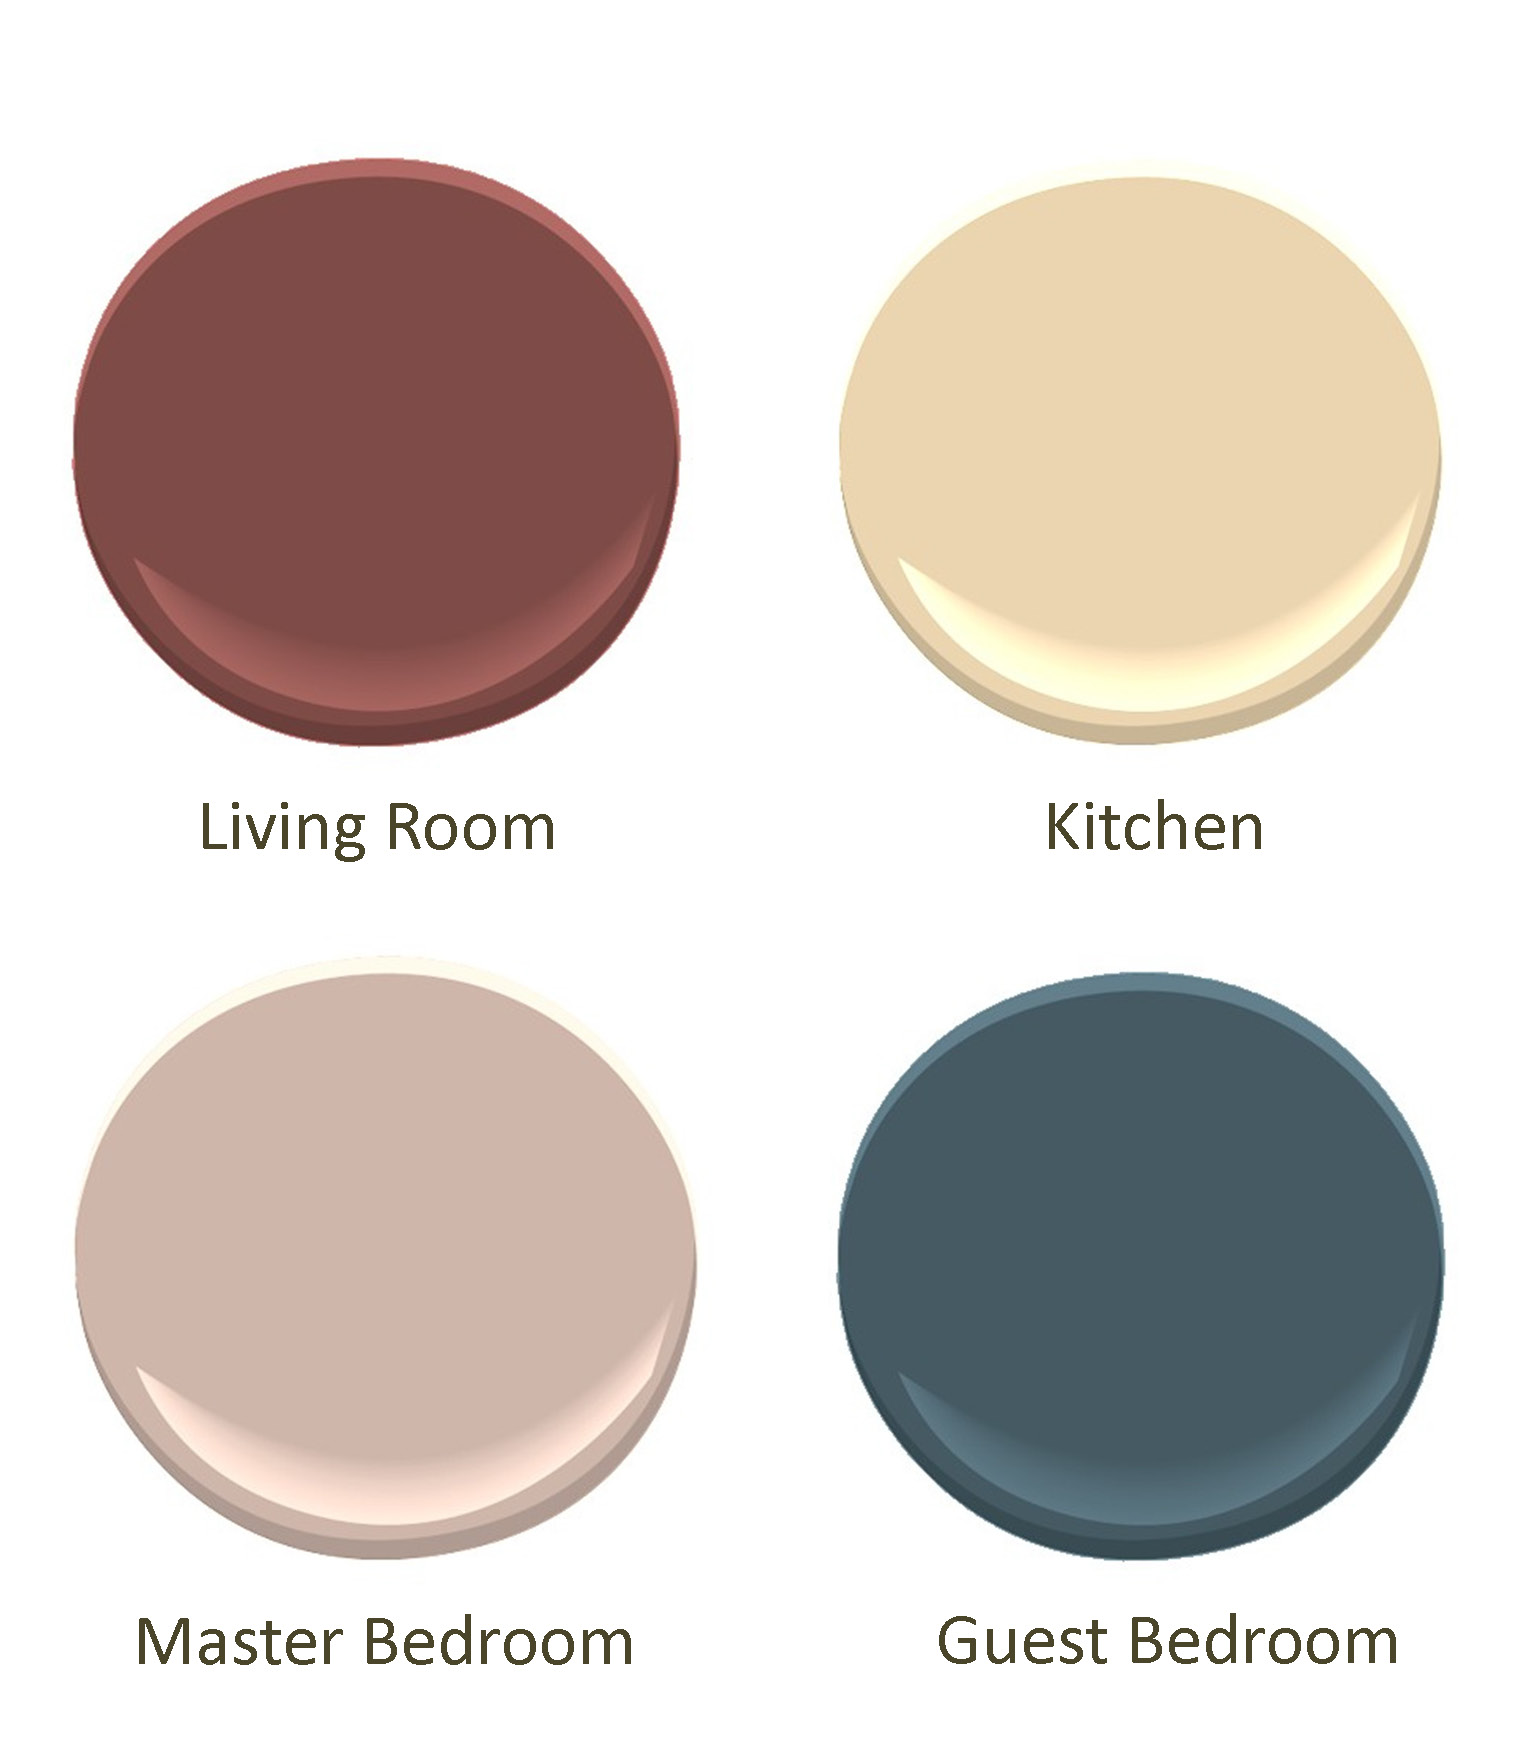 Magnificent 30 colors that go good together design for Paint colors that go together